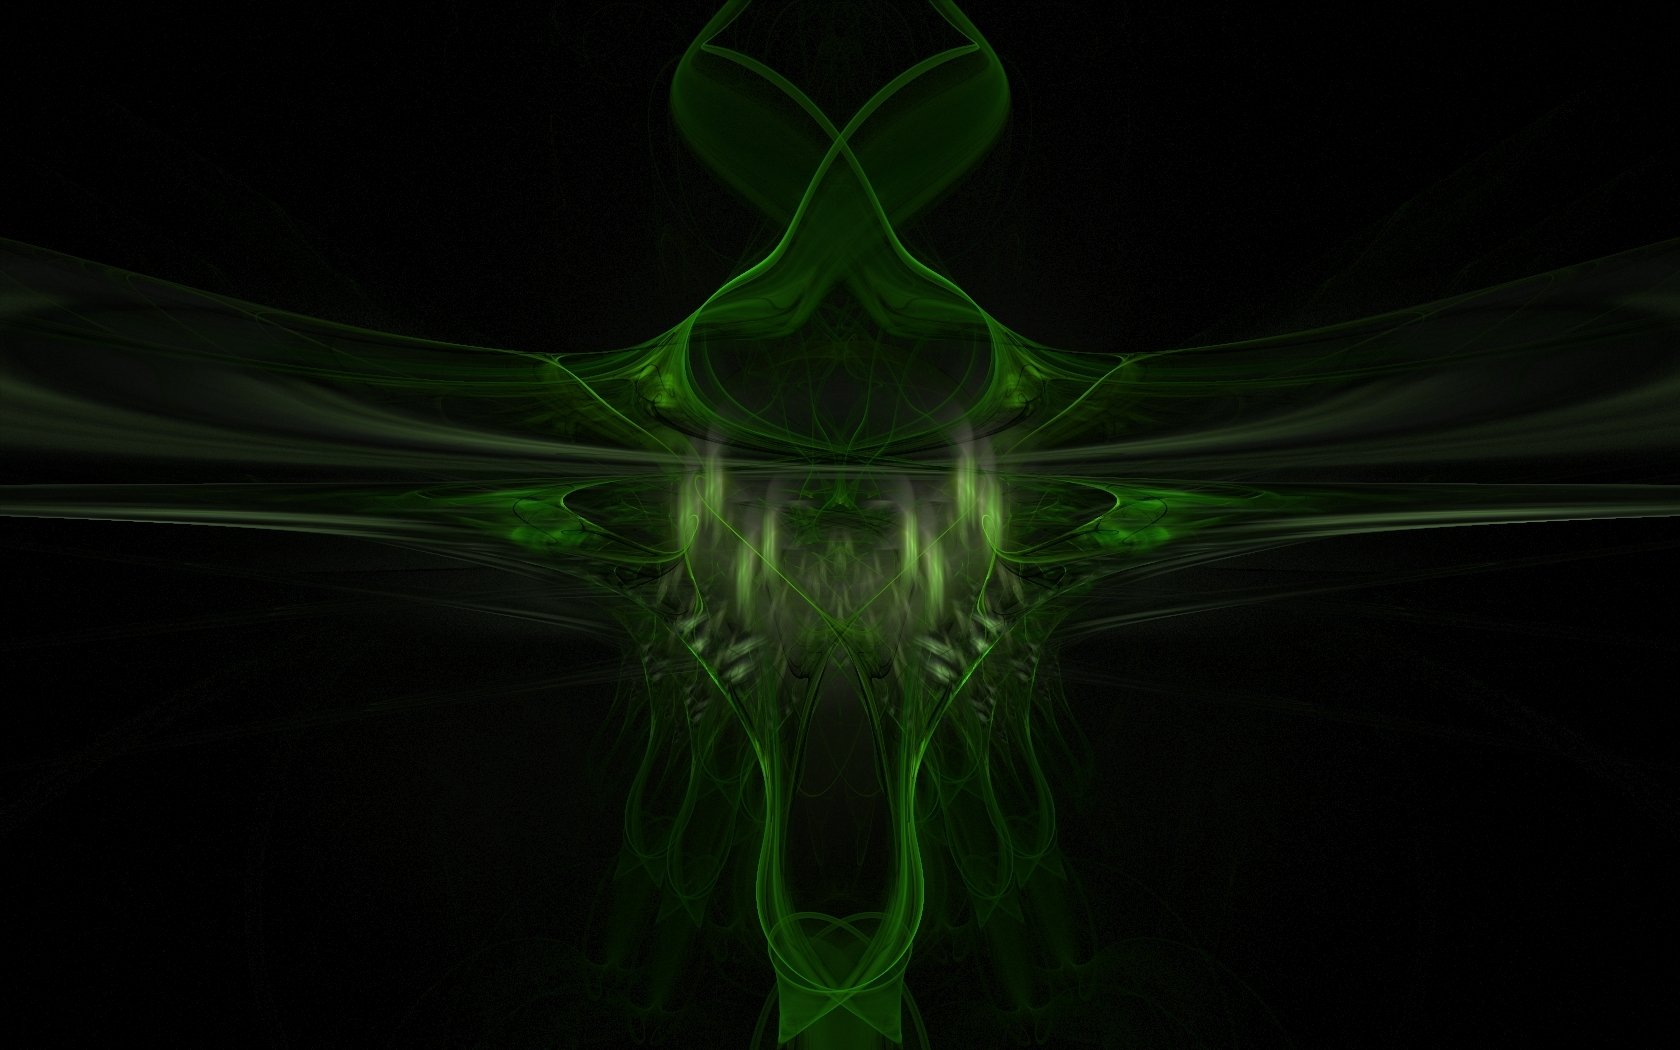 382 Green Hd Wallpapers Background Images Wallpaper Abyss